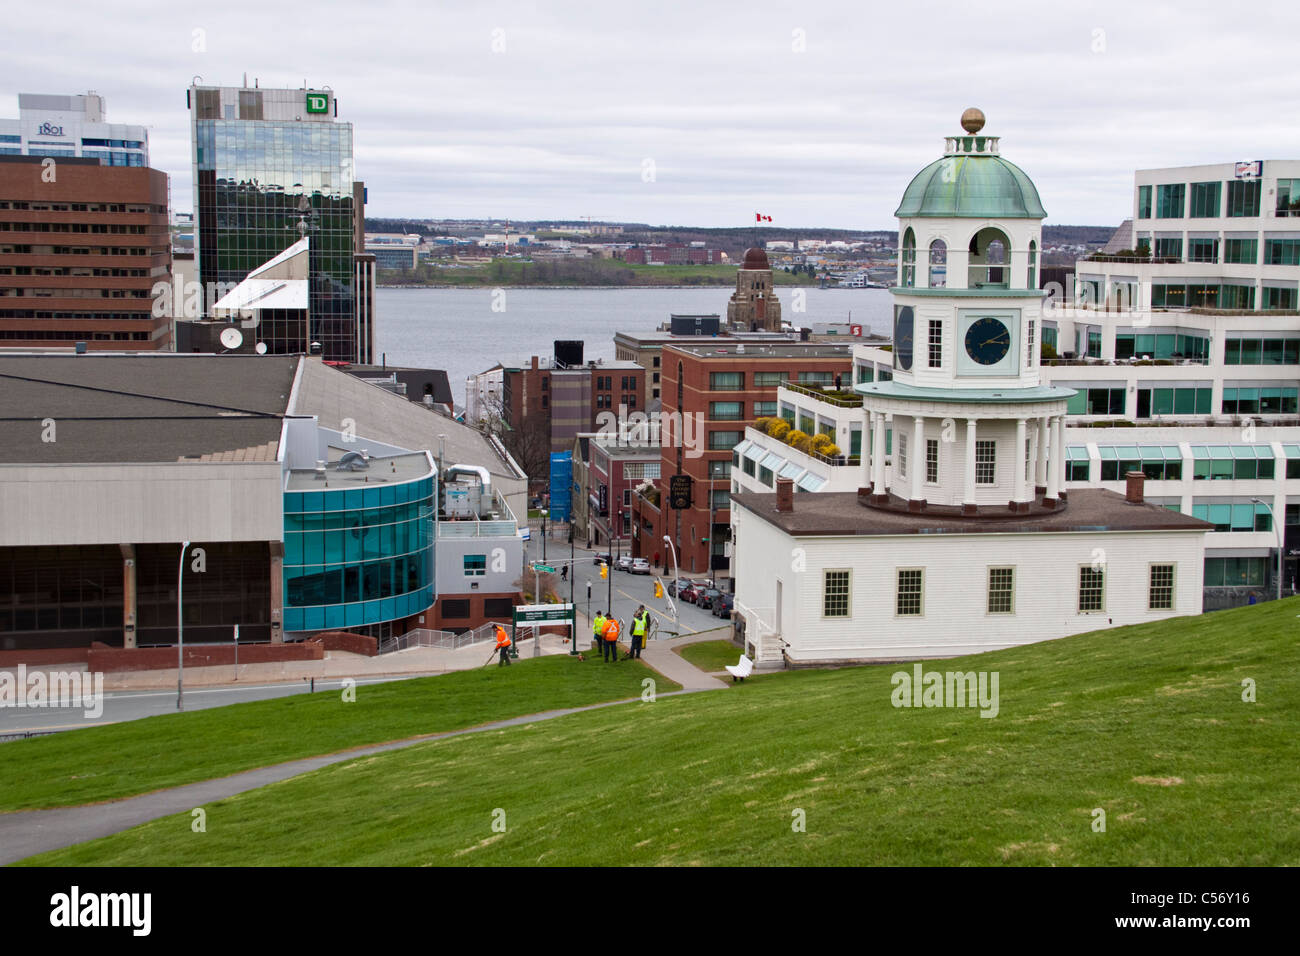 Citadel Clock Tower or Old Town Clock at Halifax harbour and downtown, Nova Scotia, Canada. - Stock Image